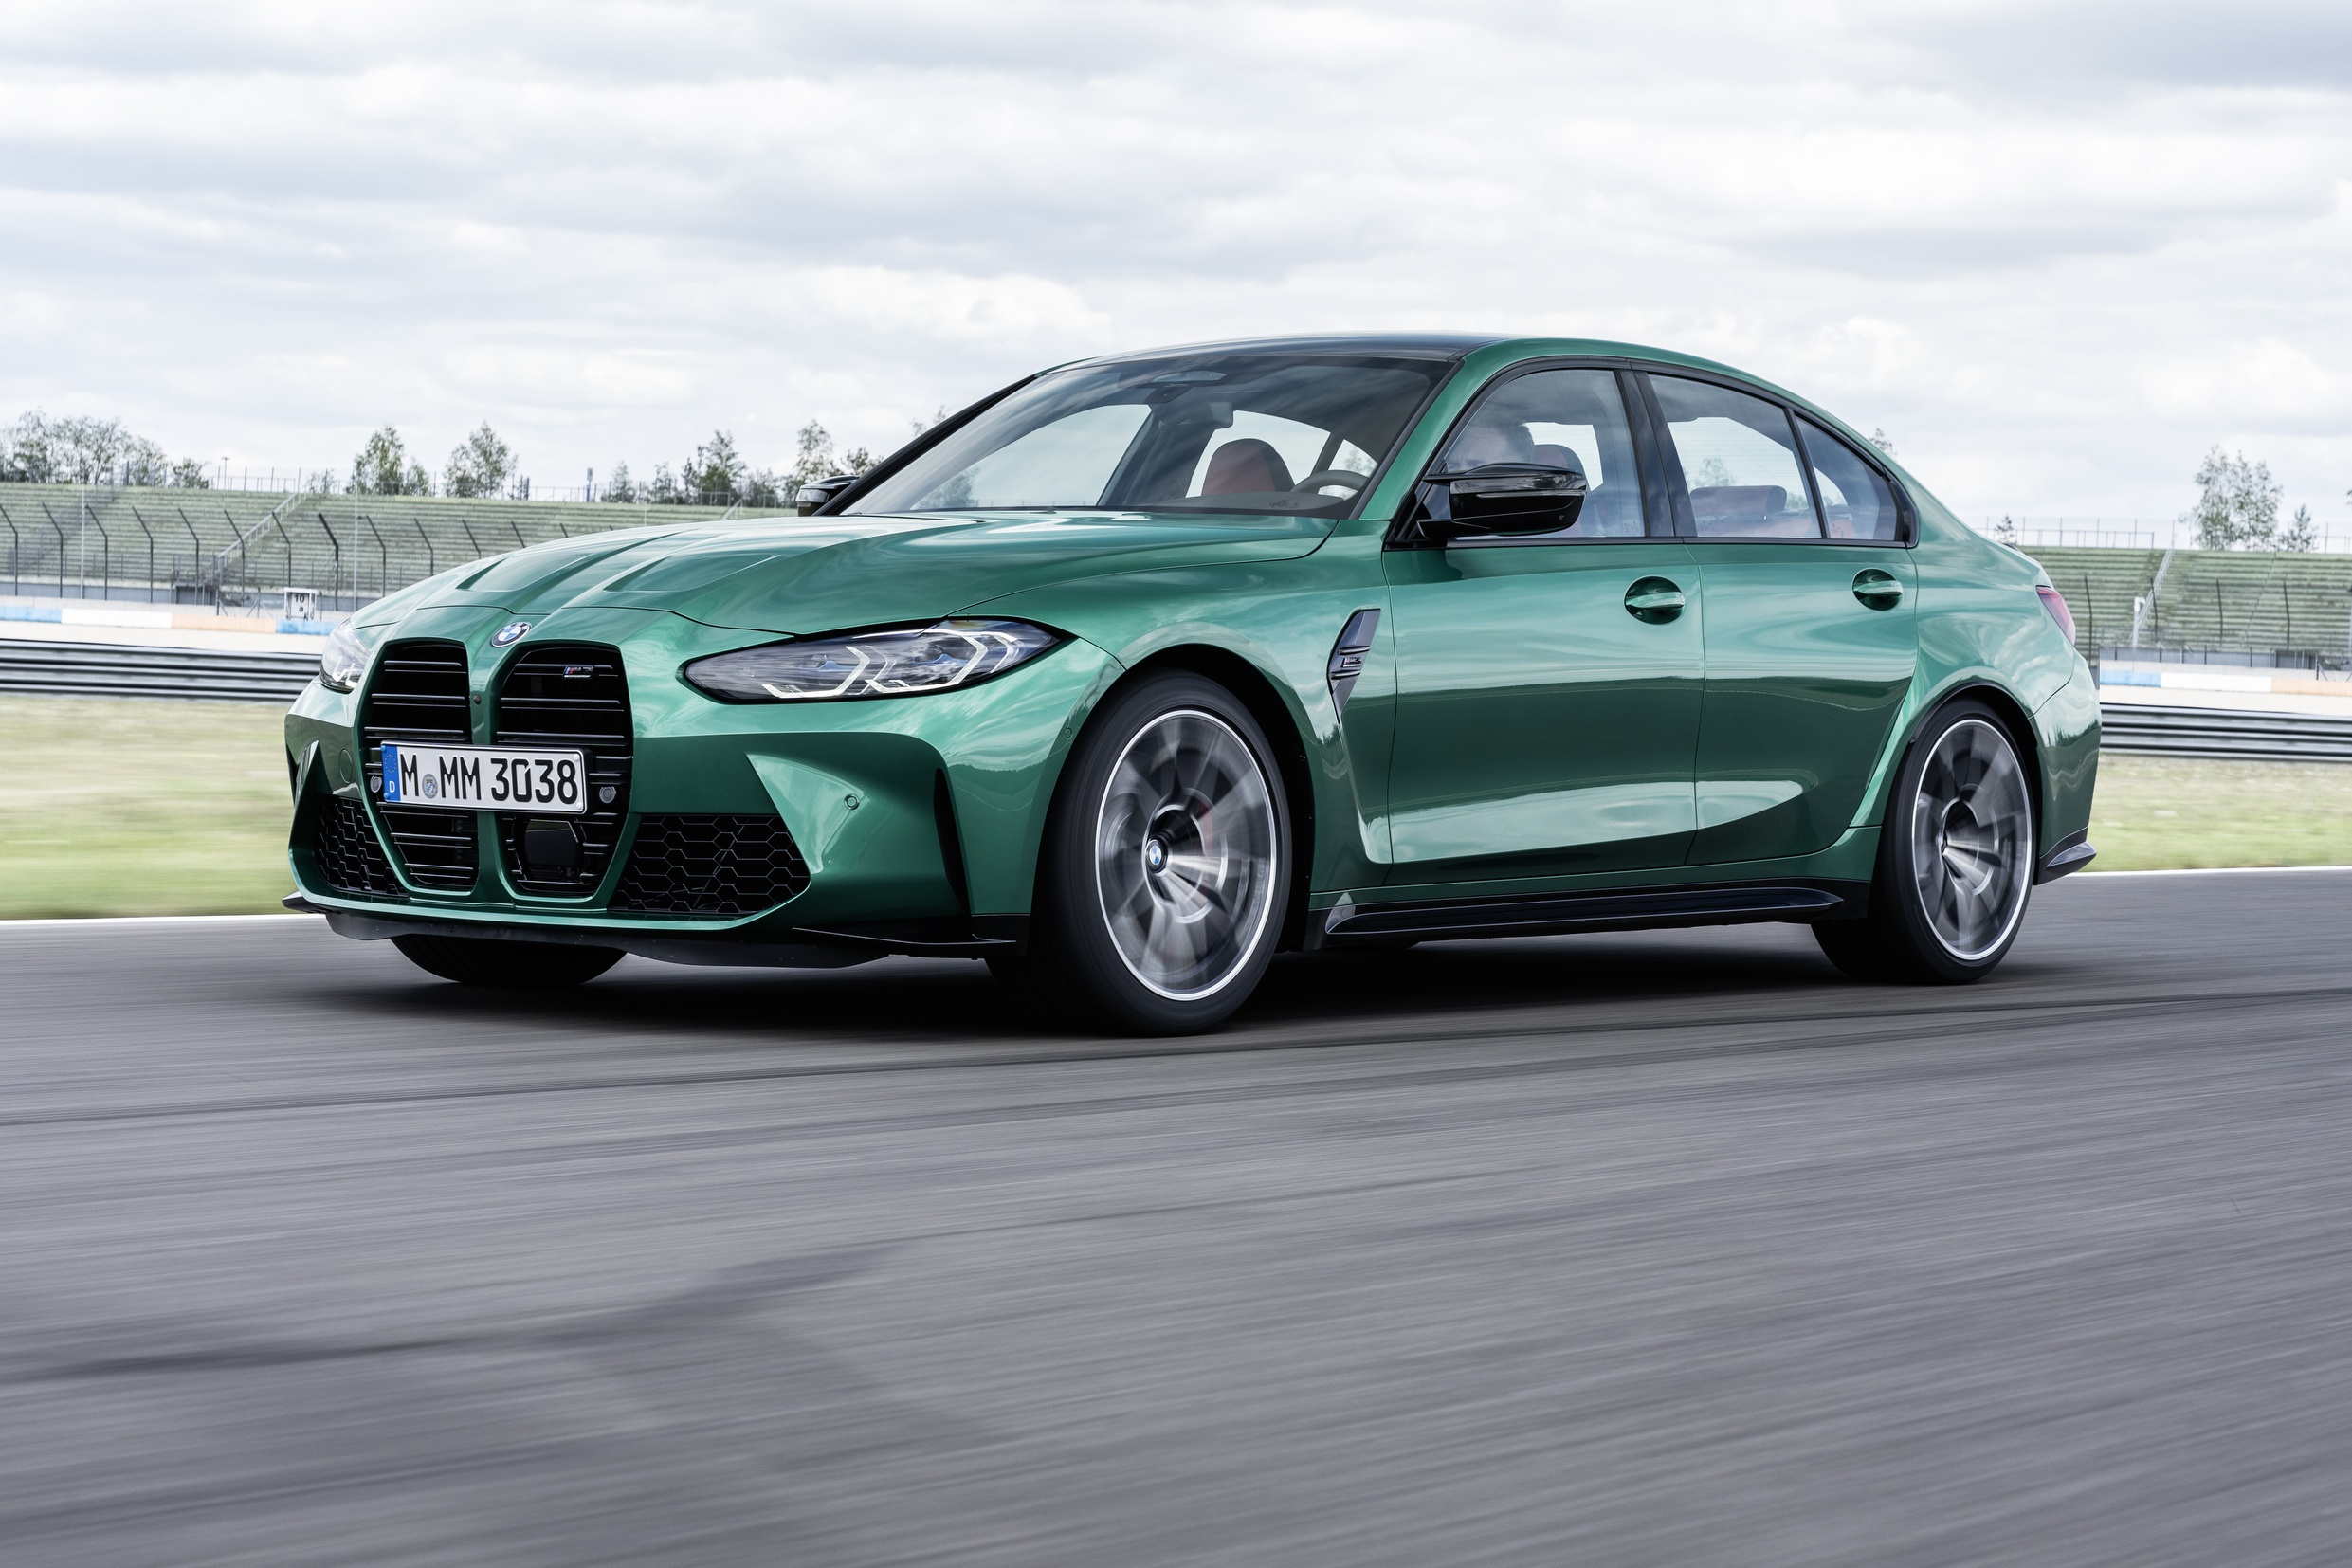 Abu Dhabi Motors announces the arrival of the all-new BMW M3 Competition Sedan and BMW M4 Competition Coupé models